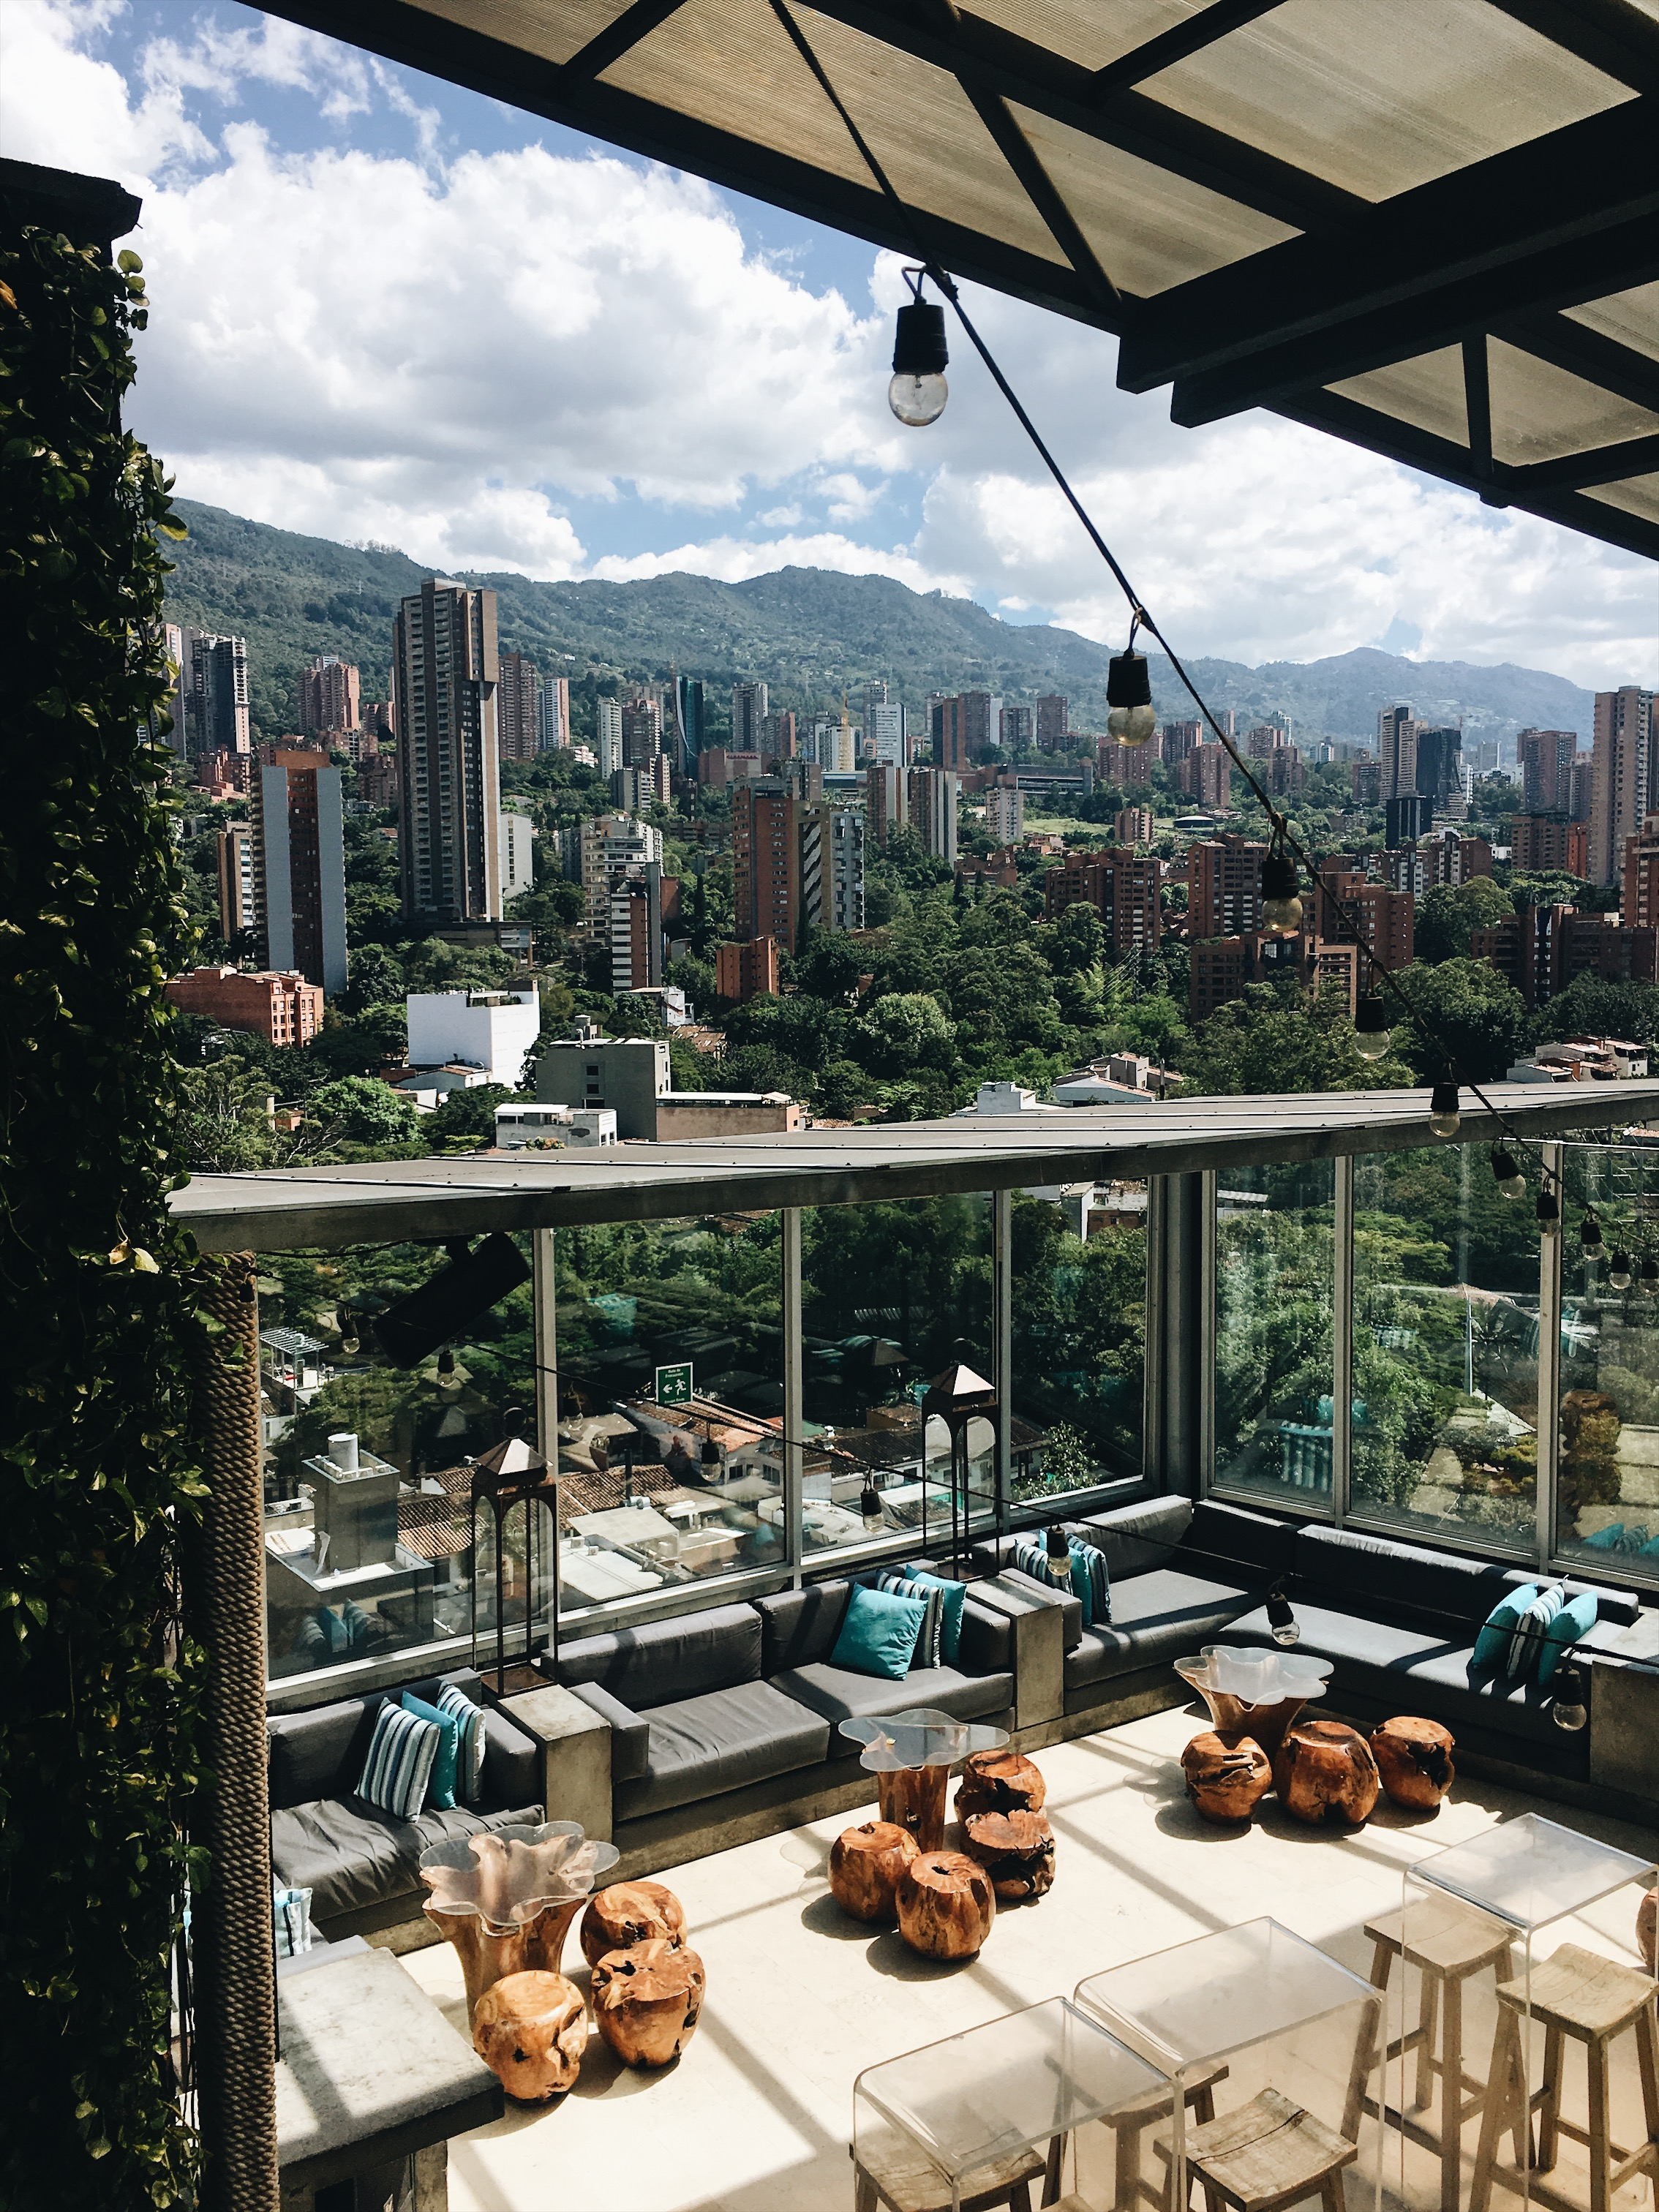 Incredible views of Poblado from The Envy Rooftop at The Charlee Hotel .